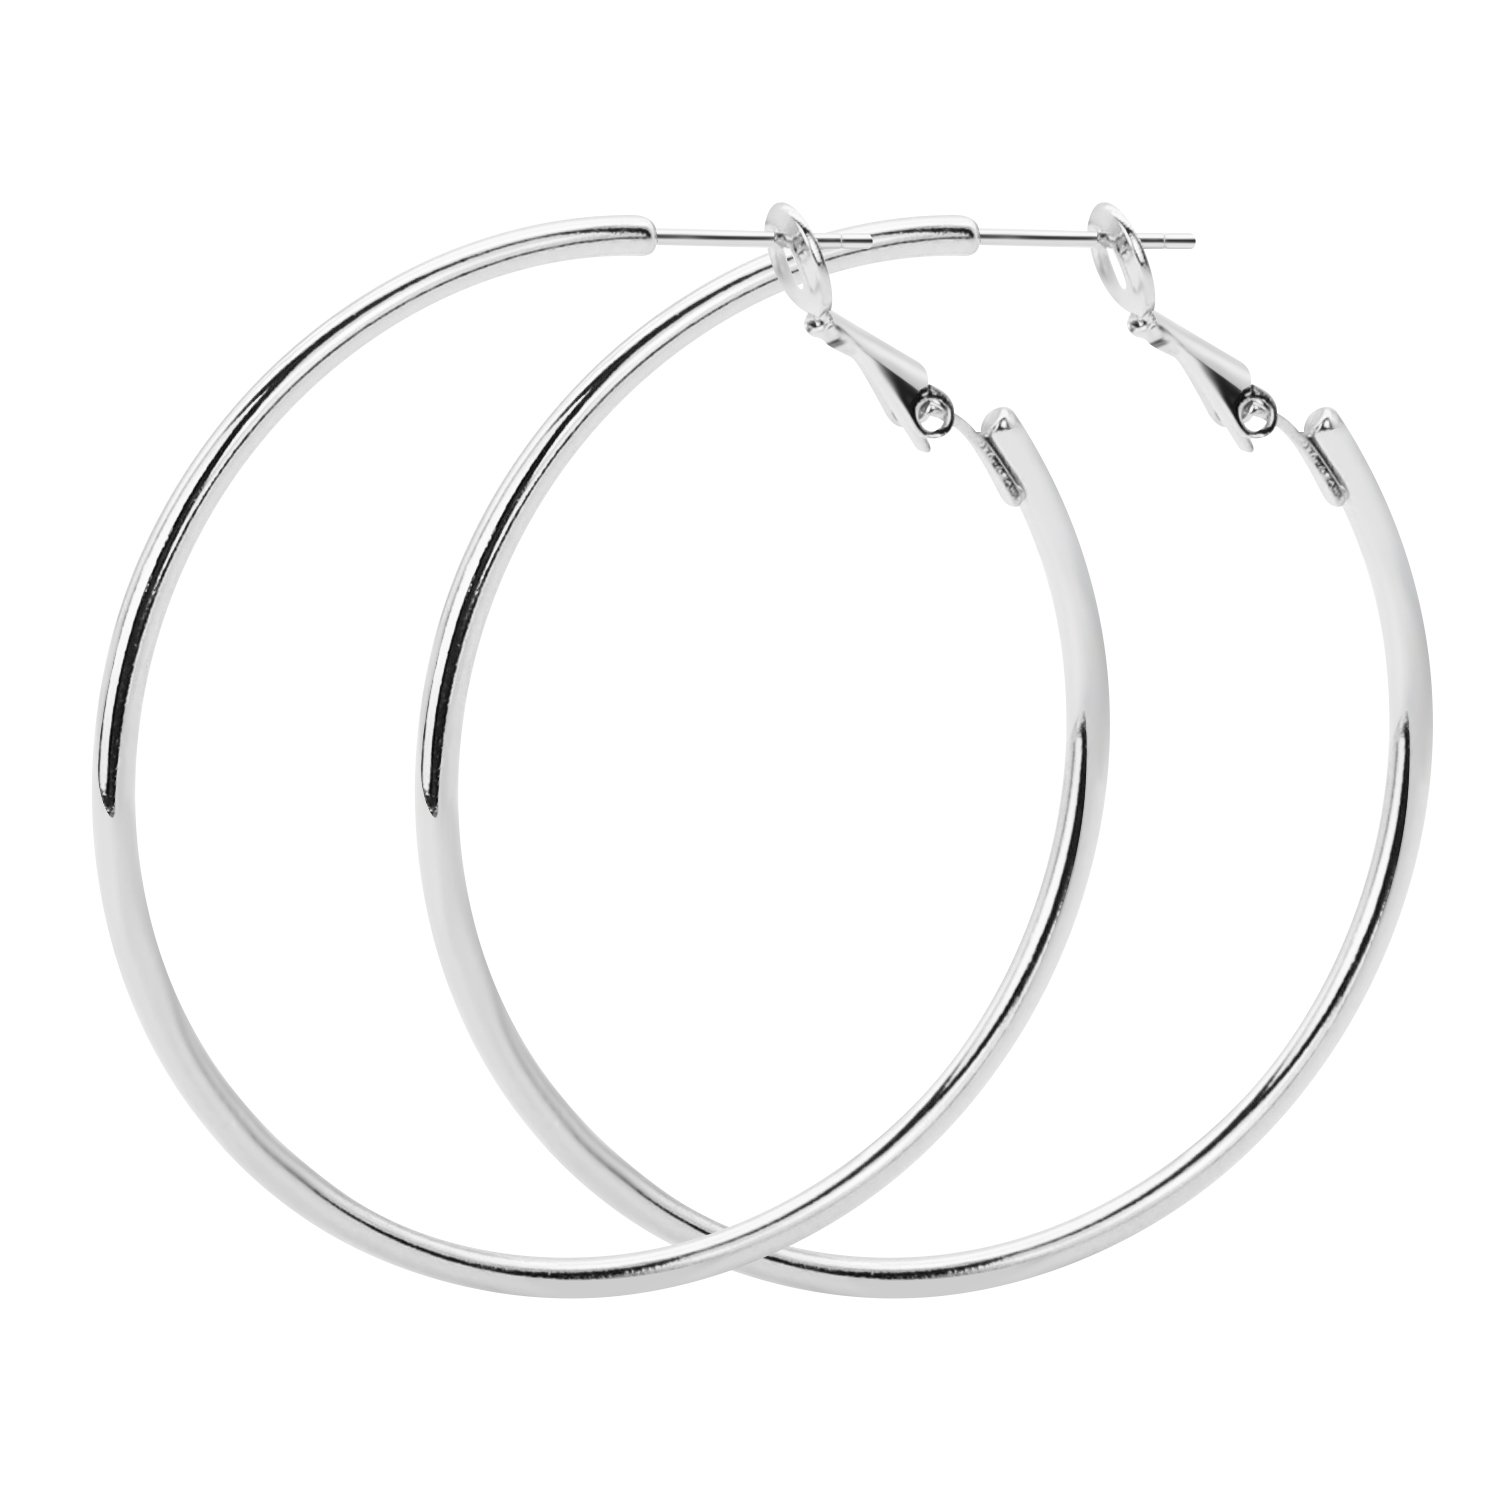 Rugewelry 925 Sterling Silver Hoop Earrings,18K Gold Plated Polished Round Hoop Earrings For Women,Girls' Gifts by Rugewelry